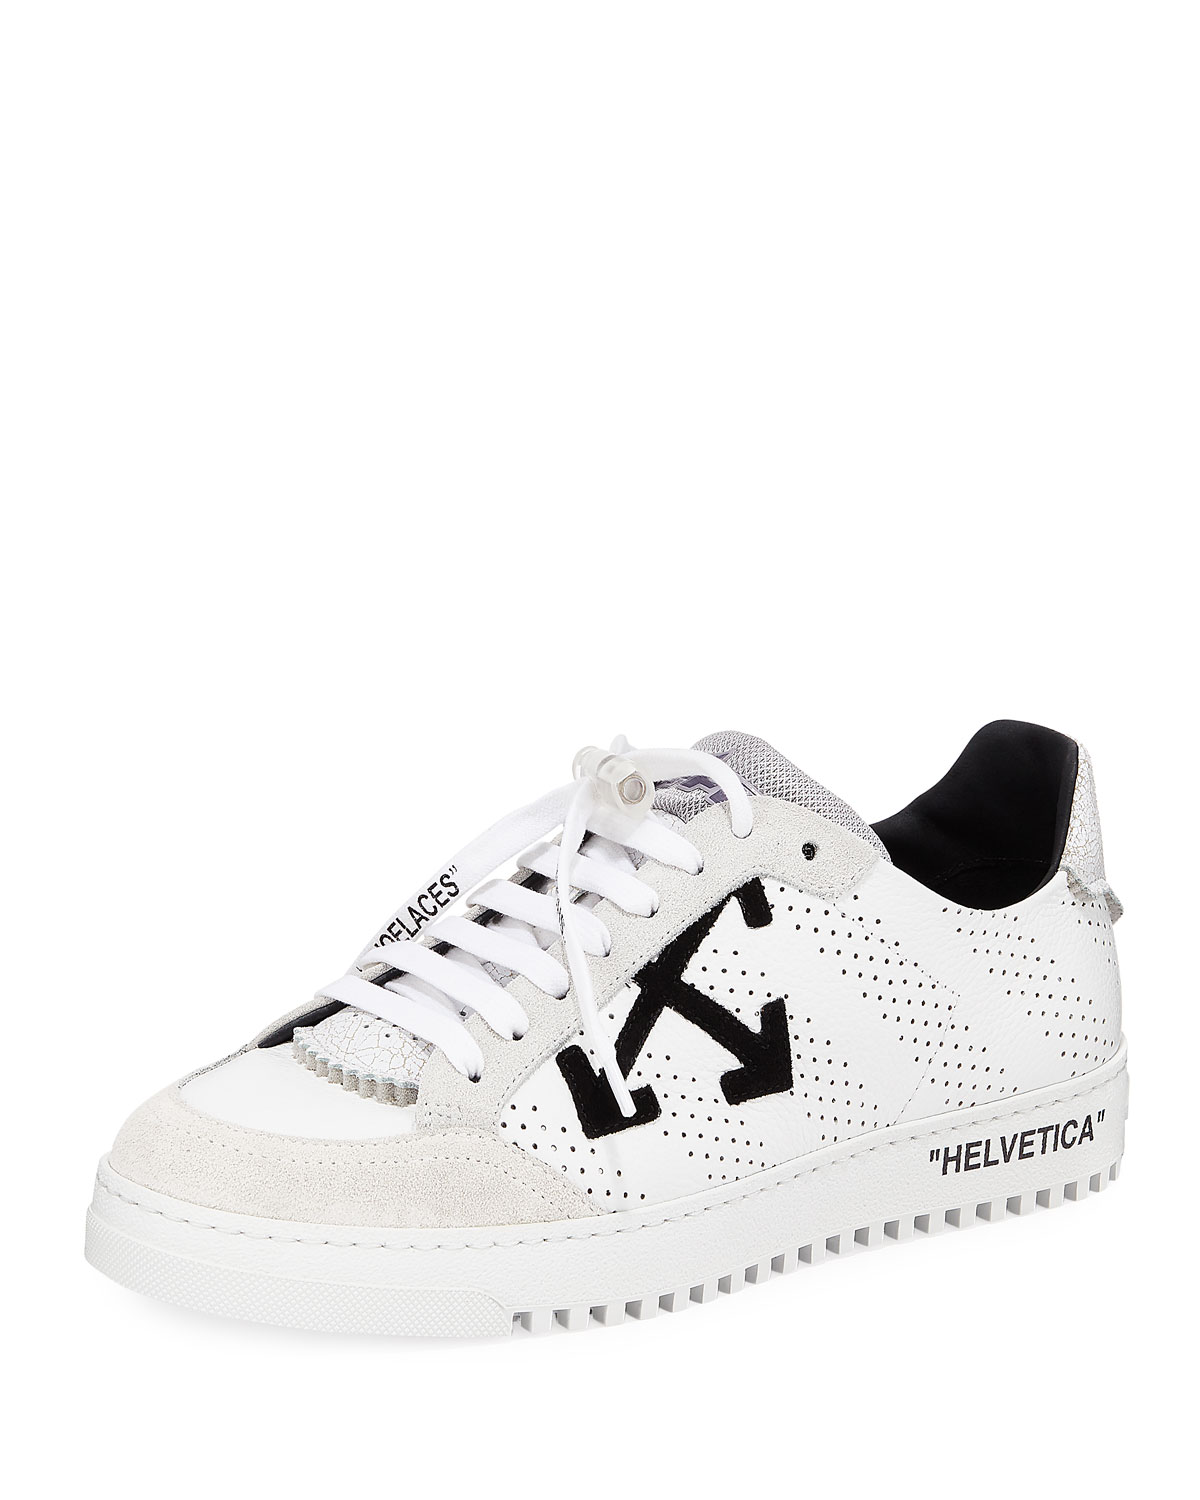 8941212e1a2 Off-White Men s 2.0 Perforated Leather   Suede Low-Top Sneakers ...